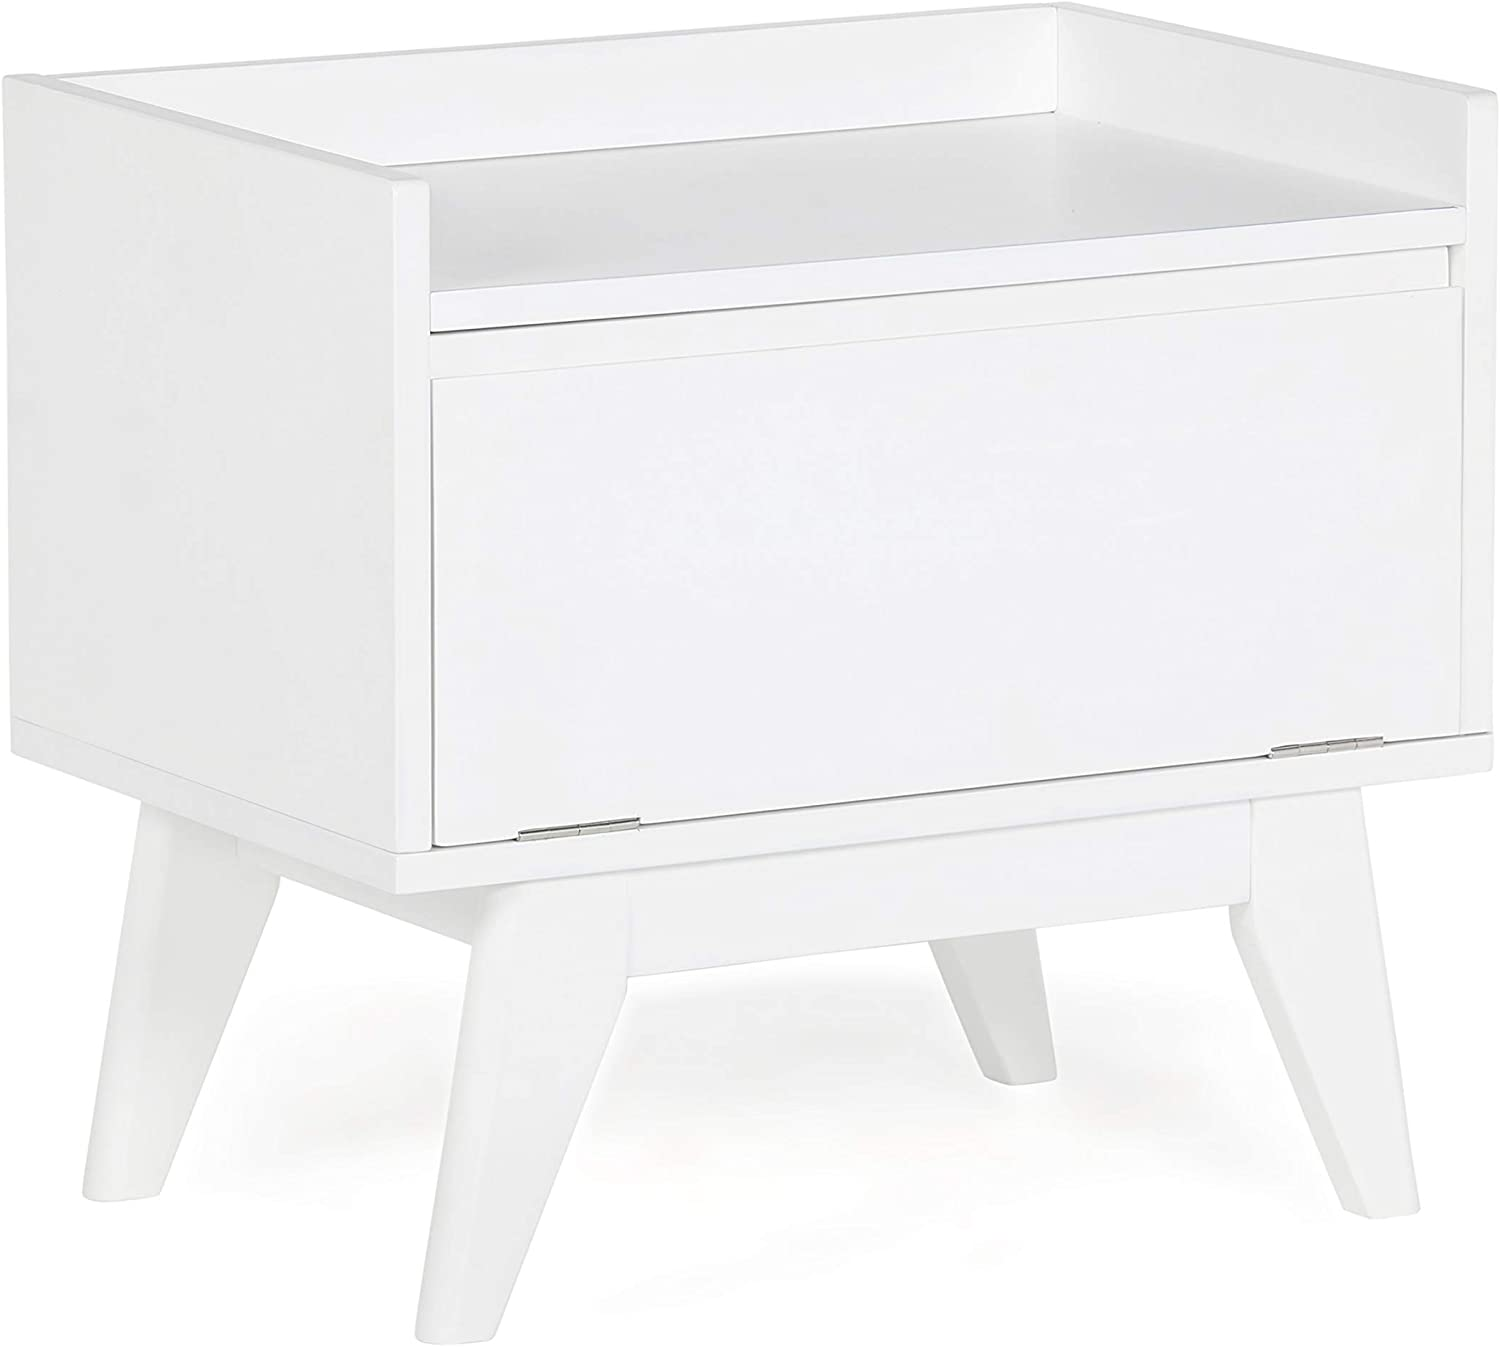 SIMPLIHOME Draper 20 inch H x 22 inch W Storage Hamper Bench in Pure White with Storage Compartment and 1 shelf, for the Bathroom, Mid Century Modern